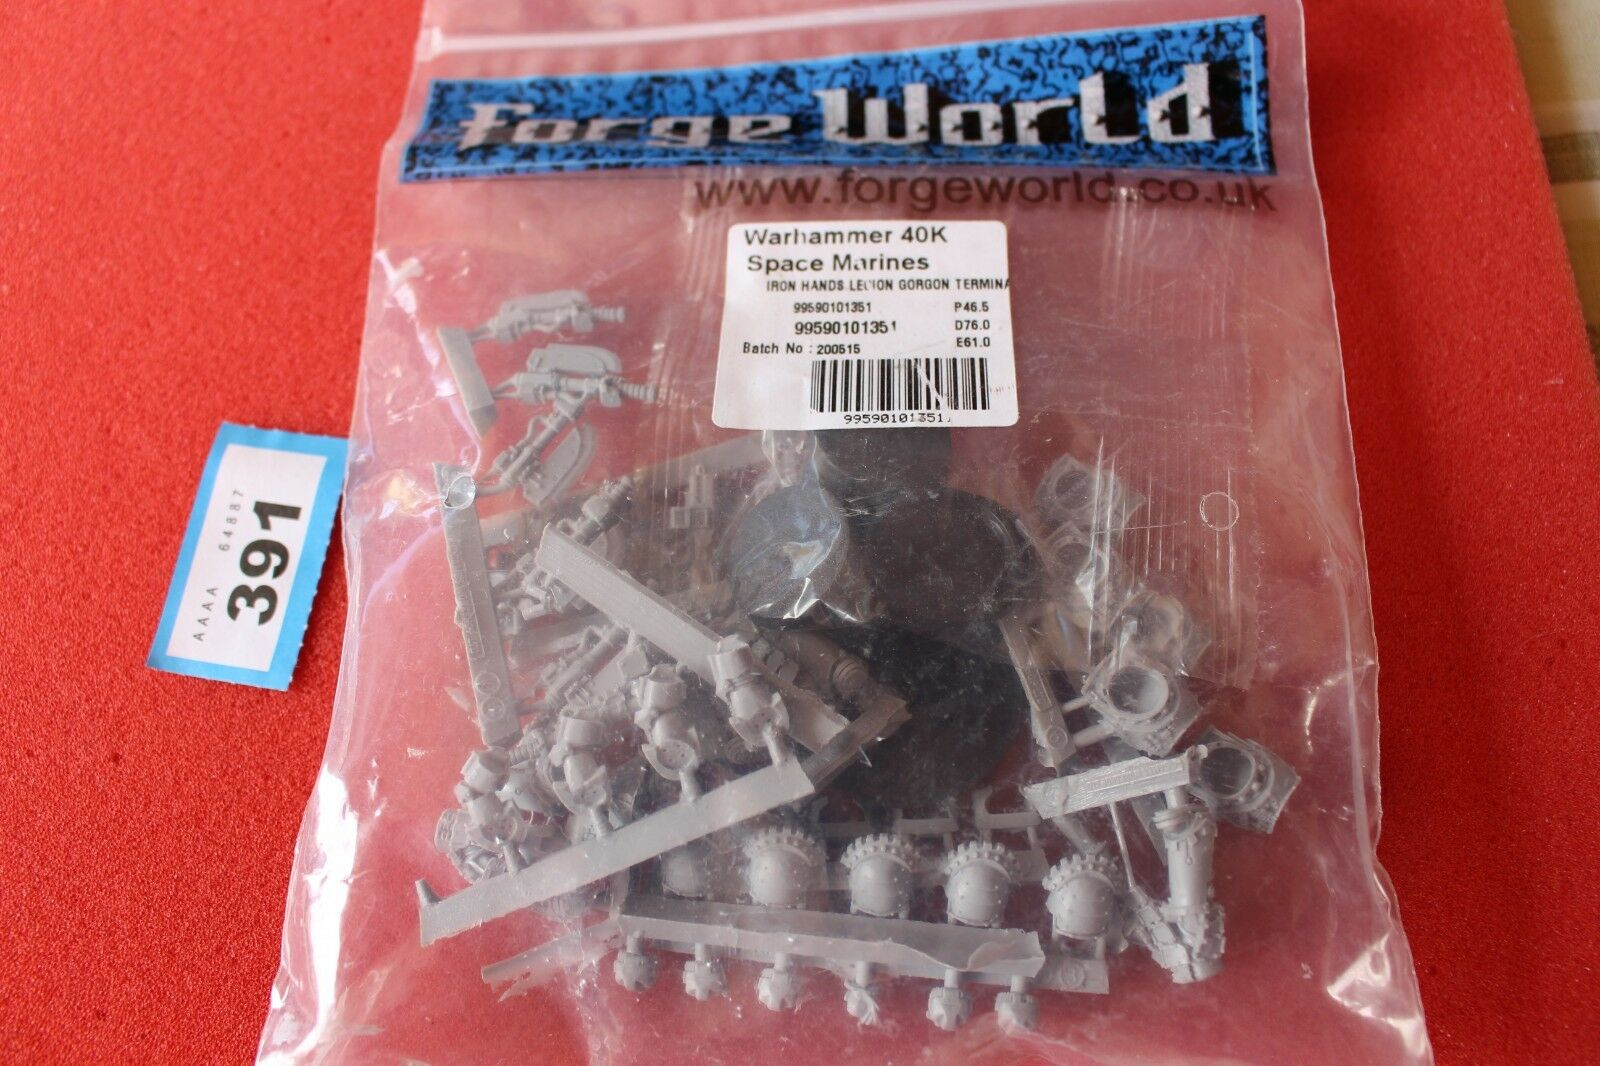 Games Workshop Warhammer 40k Forgeworld Iron Hands Legion Gorgon Terminators New